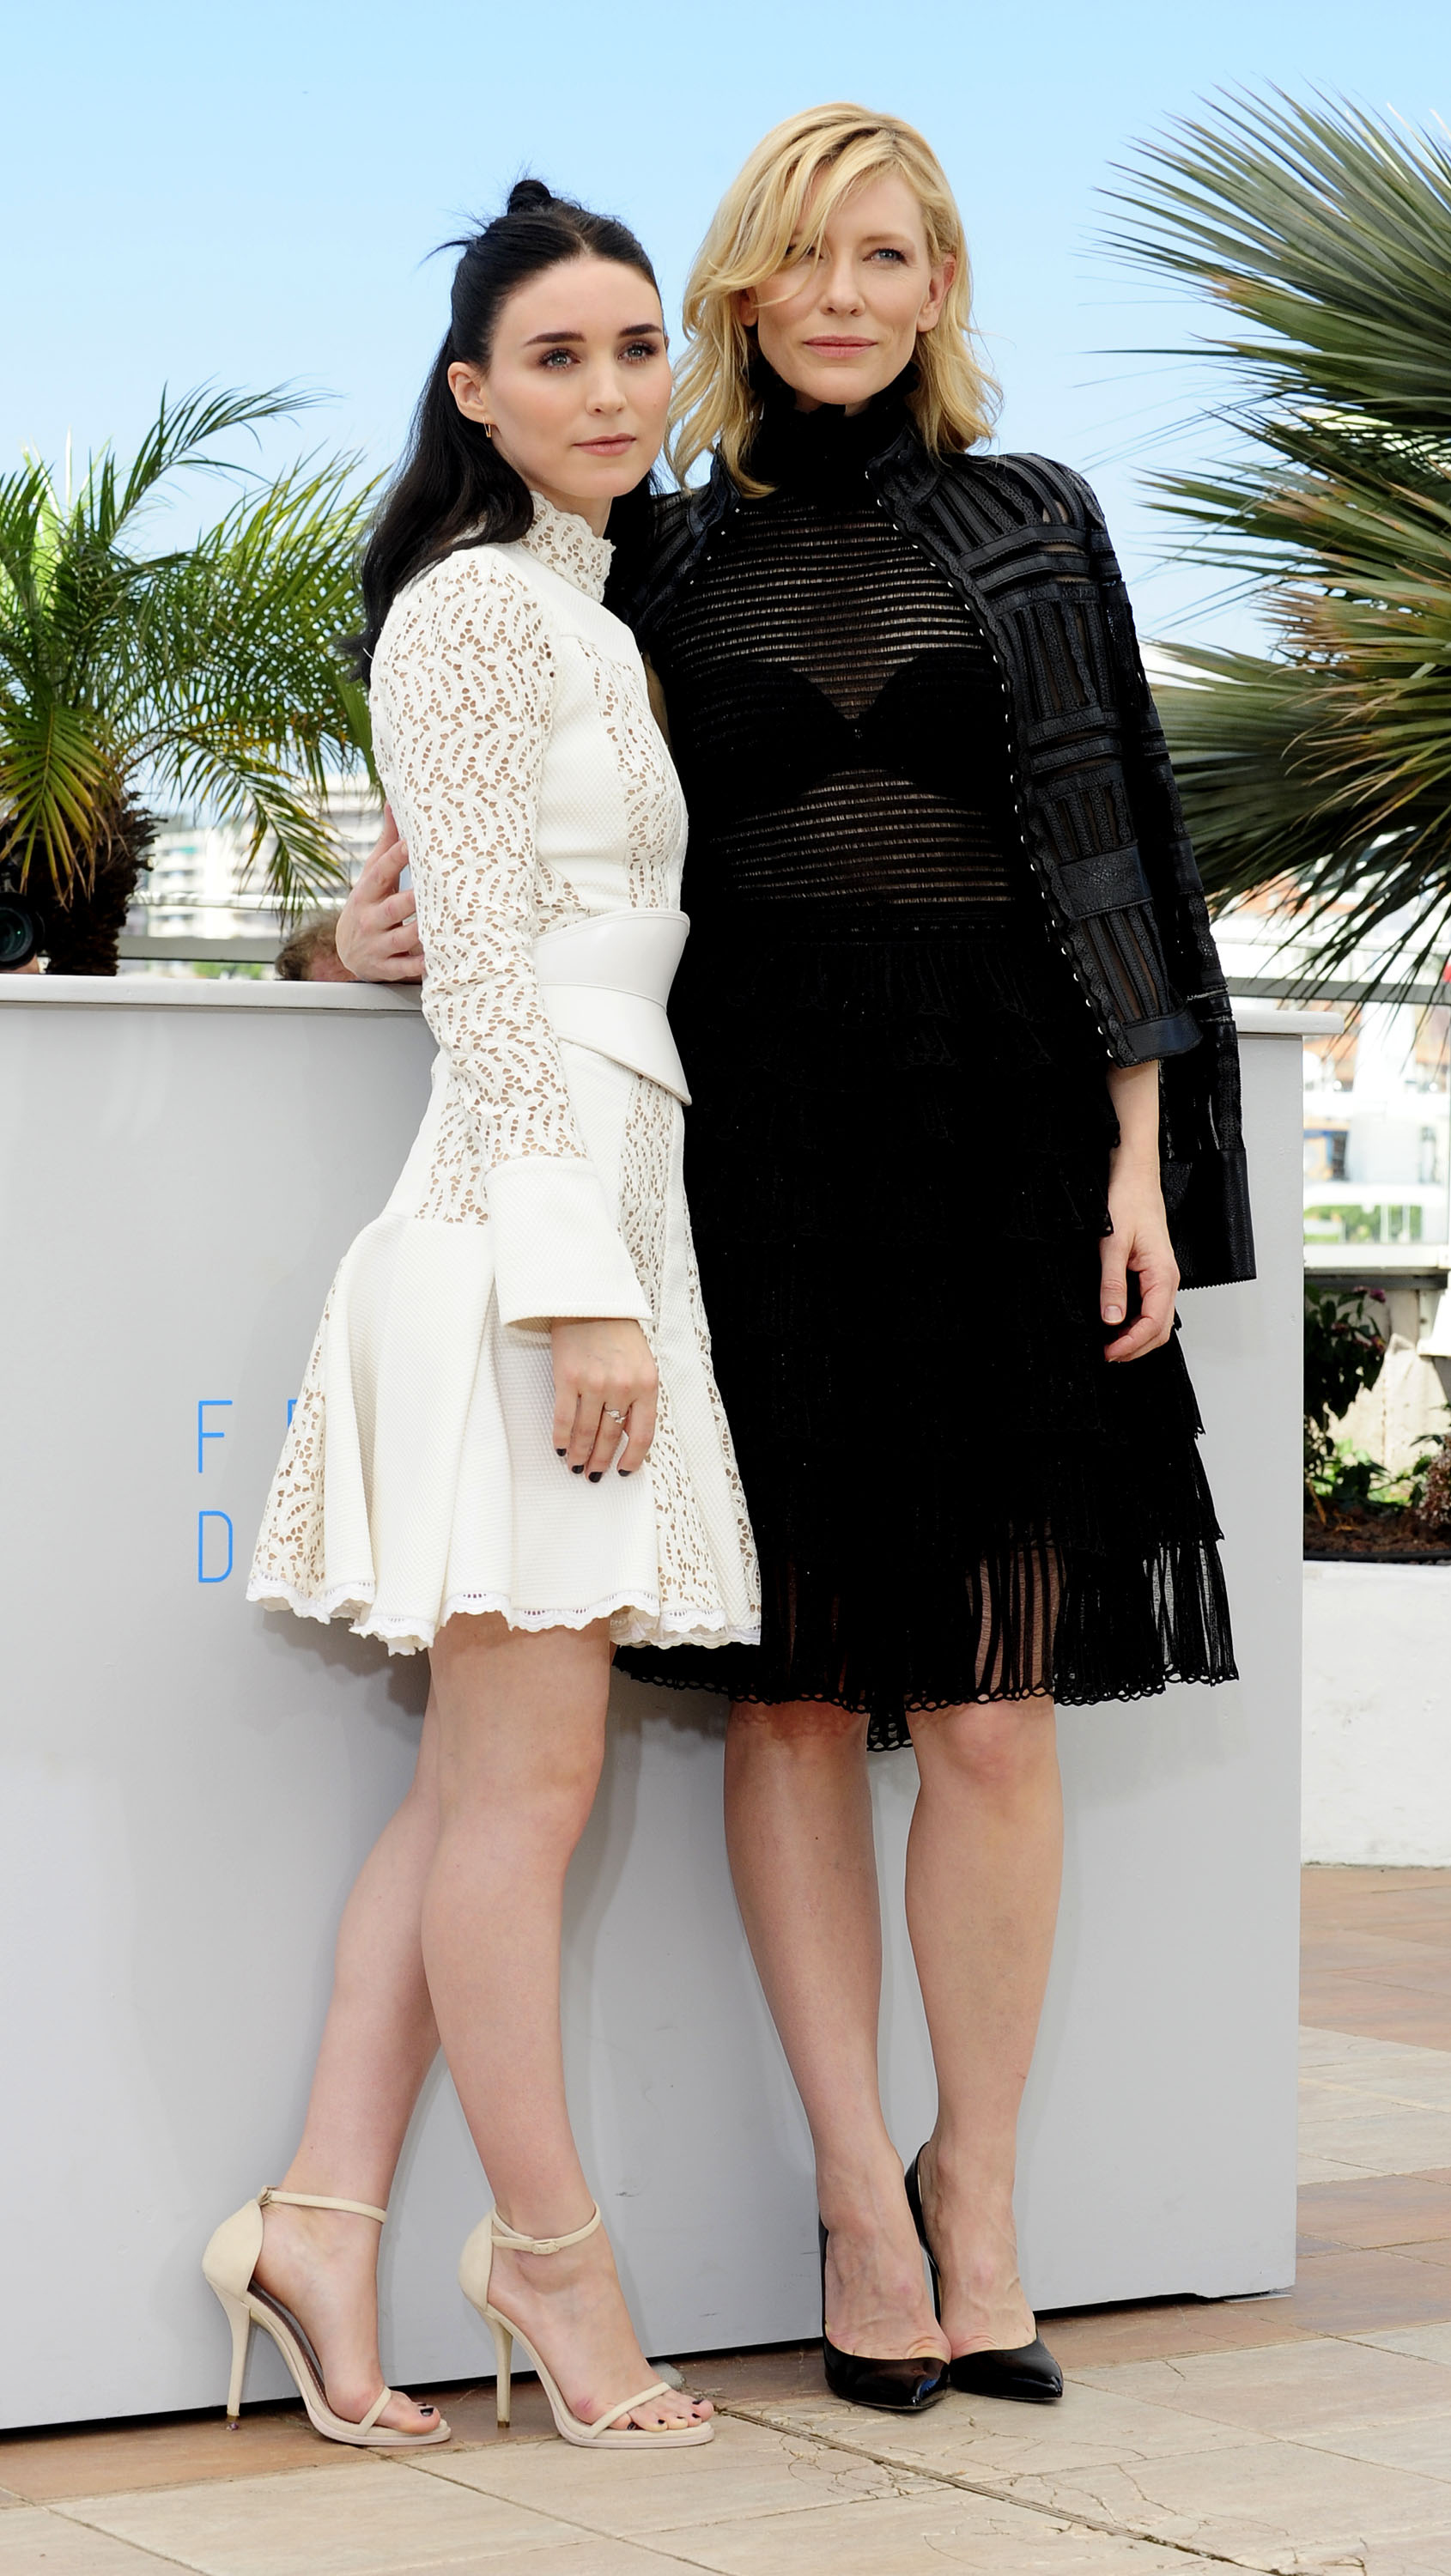 Cate Blanchett and Rooney Mara during the Cannes Film Festival on May 17, 2015 in Cannes, France.